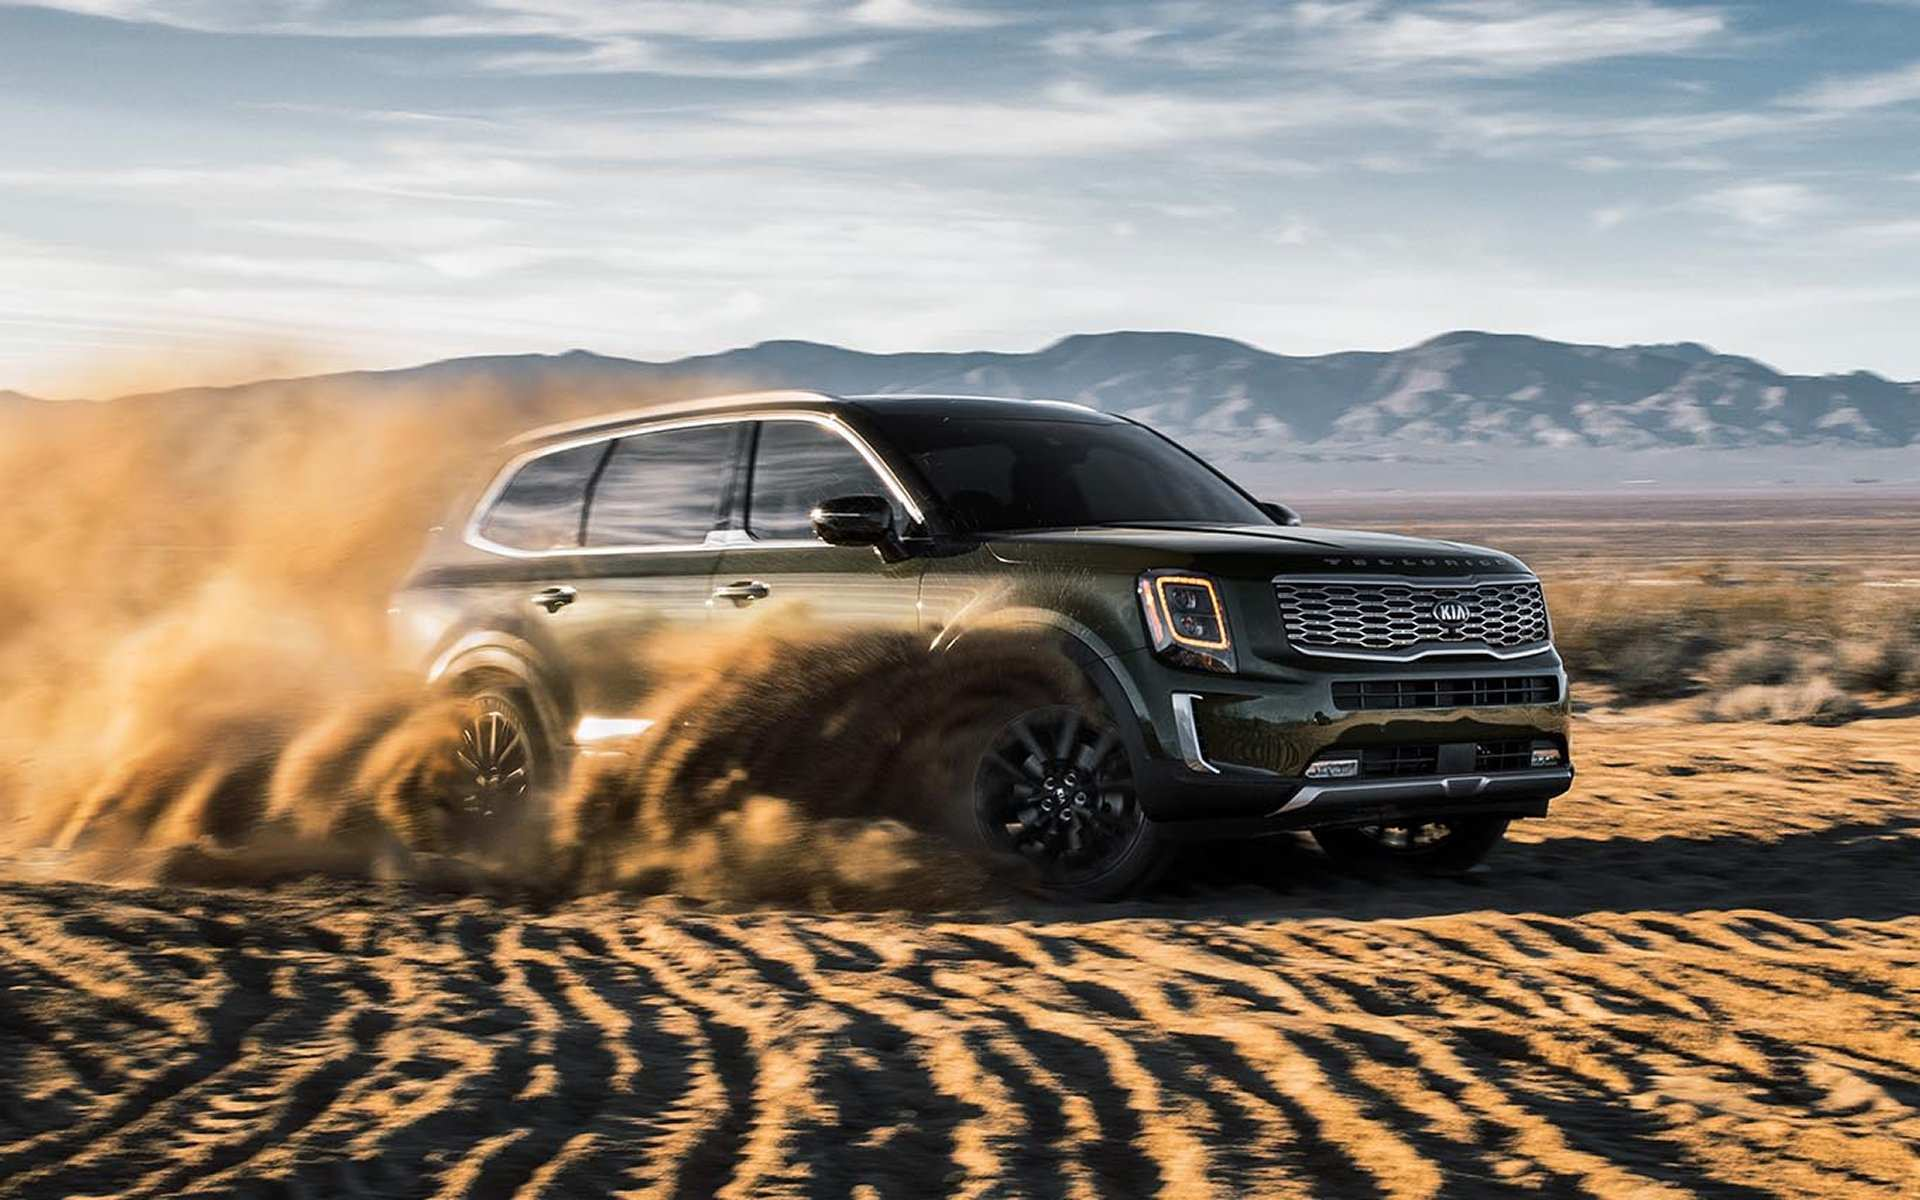 86 The Best 2020 Kia Telluride Price In Uae First Drive